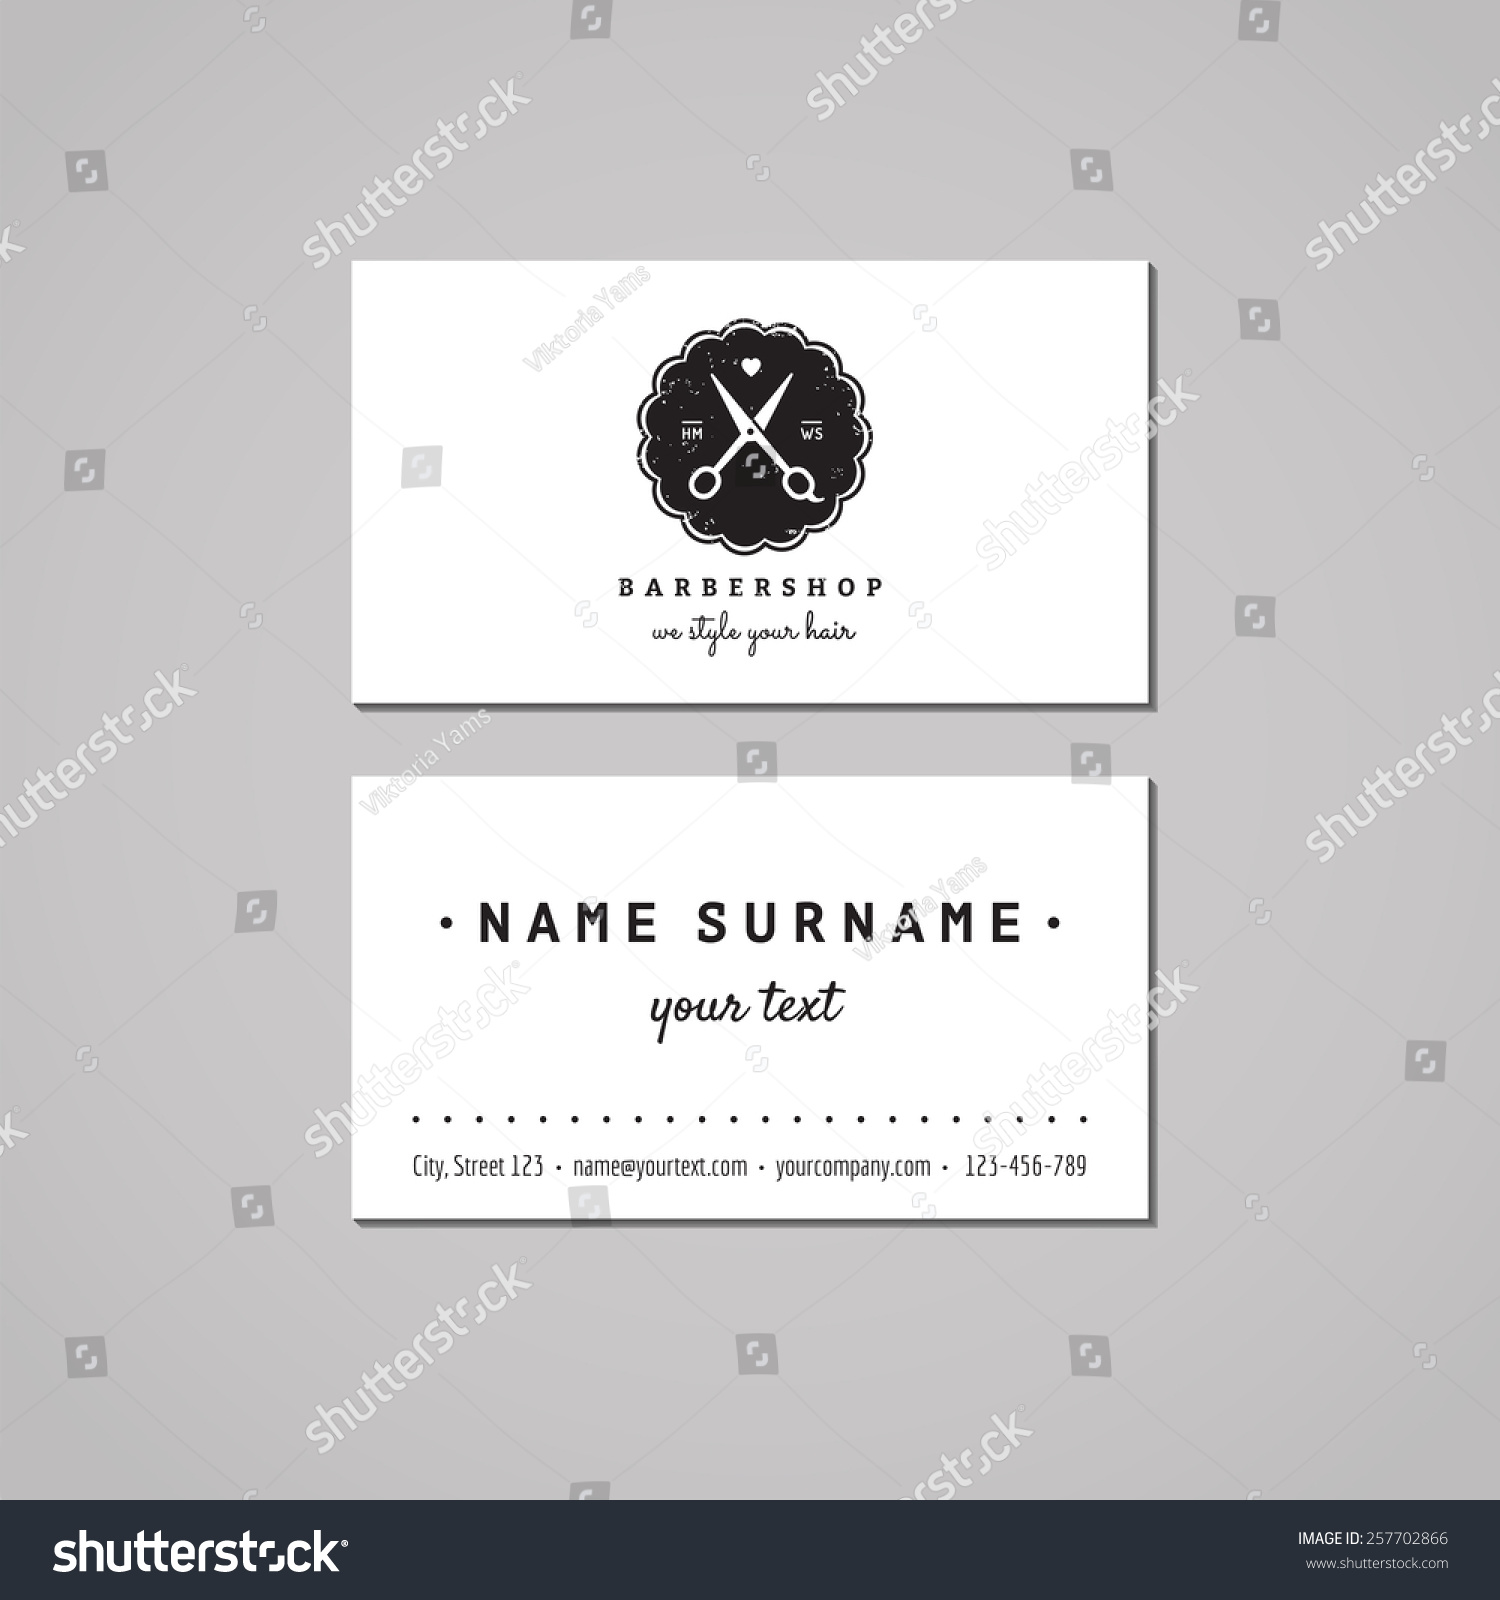 Free Business Card Logos Images - Free Business Cards